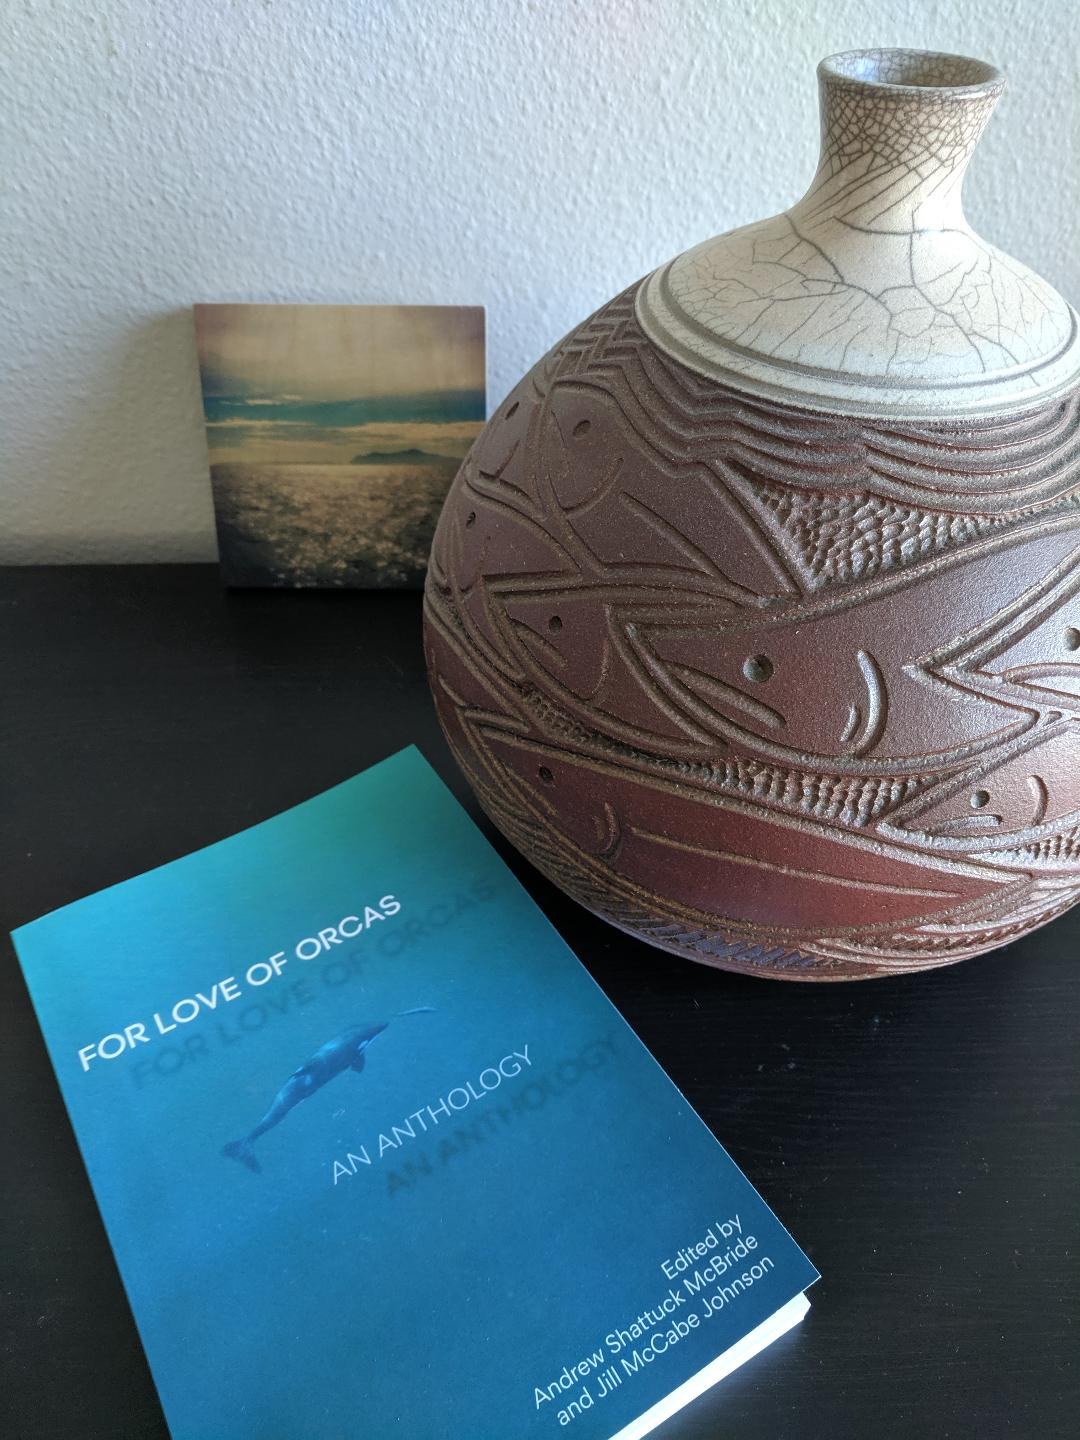 Copy of For Love of Orcas